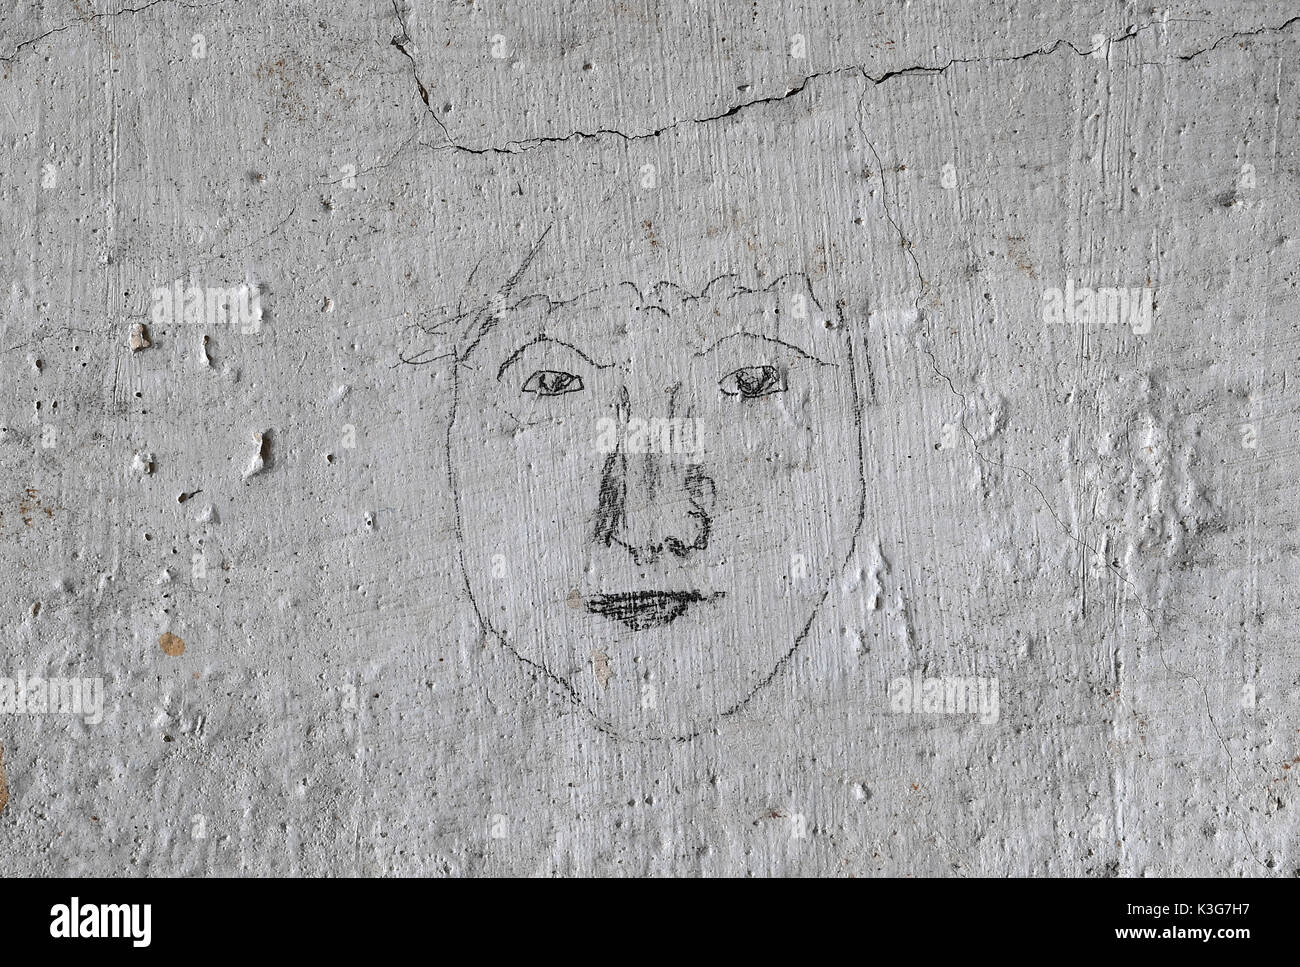 Frankenberg, Germany. 23rd Aug, 2071. FILE - Archival material shows a face at the wall in a cell in the former concentration camp Sachsenburg in Frankenberg, Germany, 23 August 2071. The Nazi organisations SA and SS imprisoned more than 2000 critics of the regime in the former spinning mill between 1933 and 1937. The political parties Die Linke (Left Party) and Die Gruenne (Alliance 90/The Greens) plan to transform the factory into a memorial. Photo: Hendrik Schmidt/dpa-Zentralbild/ZB/dpa/Alamy Live News - Stock Image